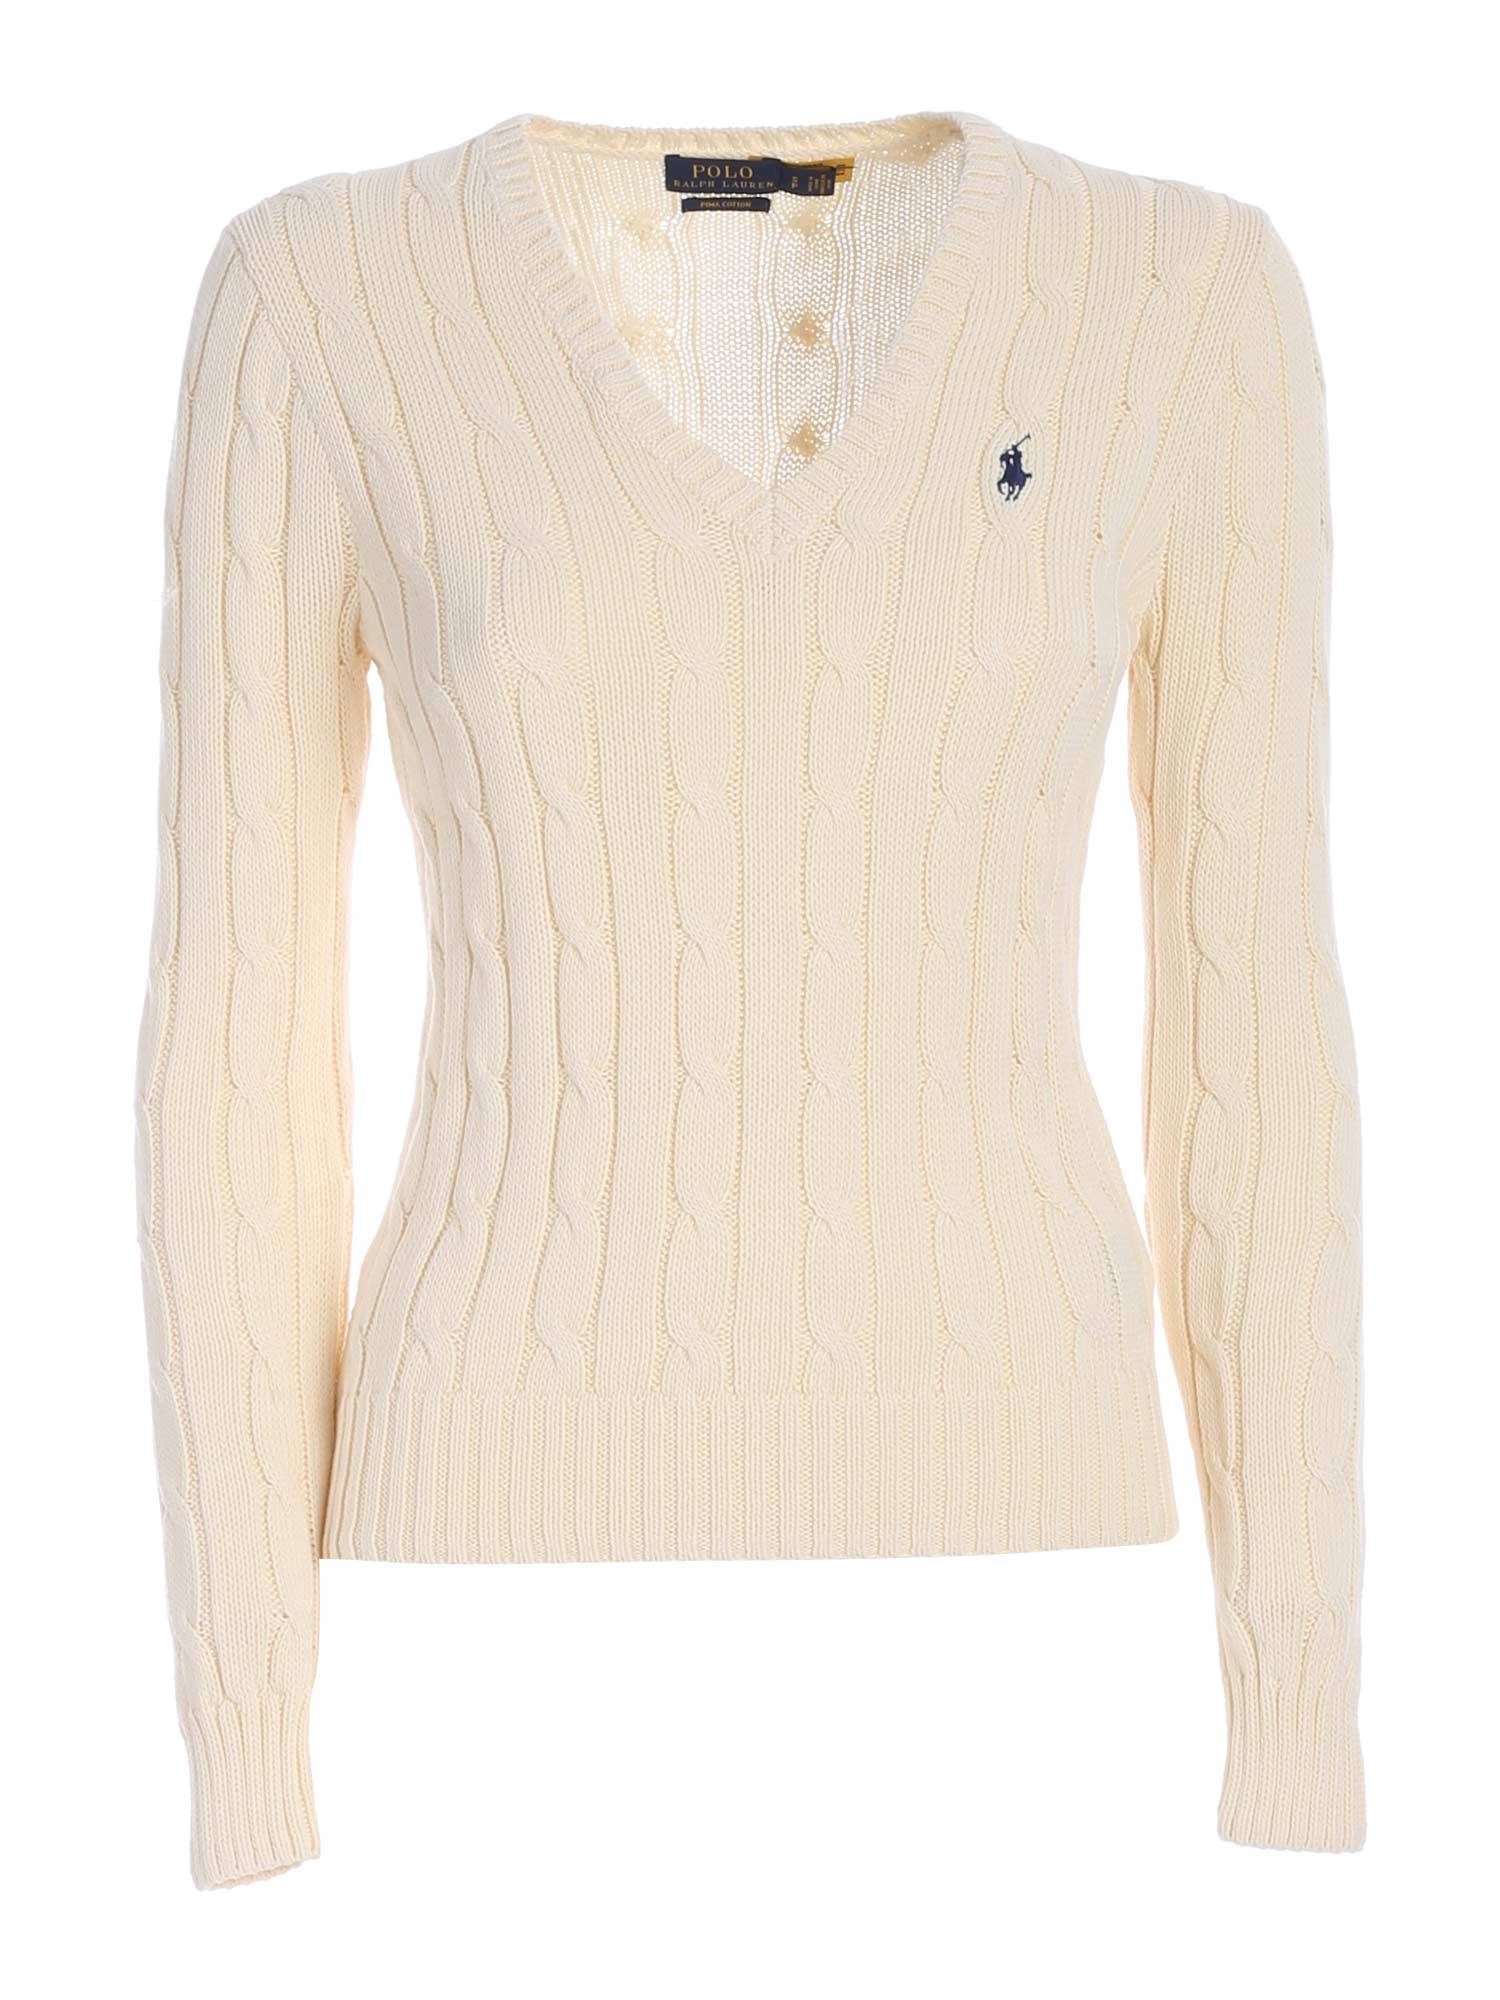 Polo Ralph Lauren Cottons POLO RALPH LAUREN LOGO EMBROIDERY SWEATER IN CREAM COLOR